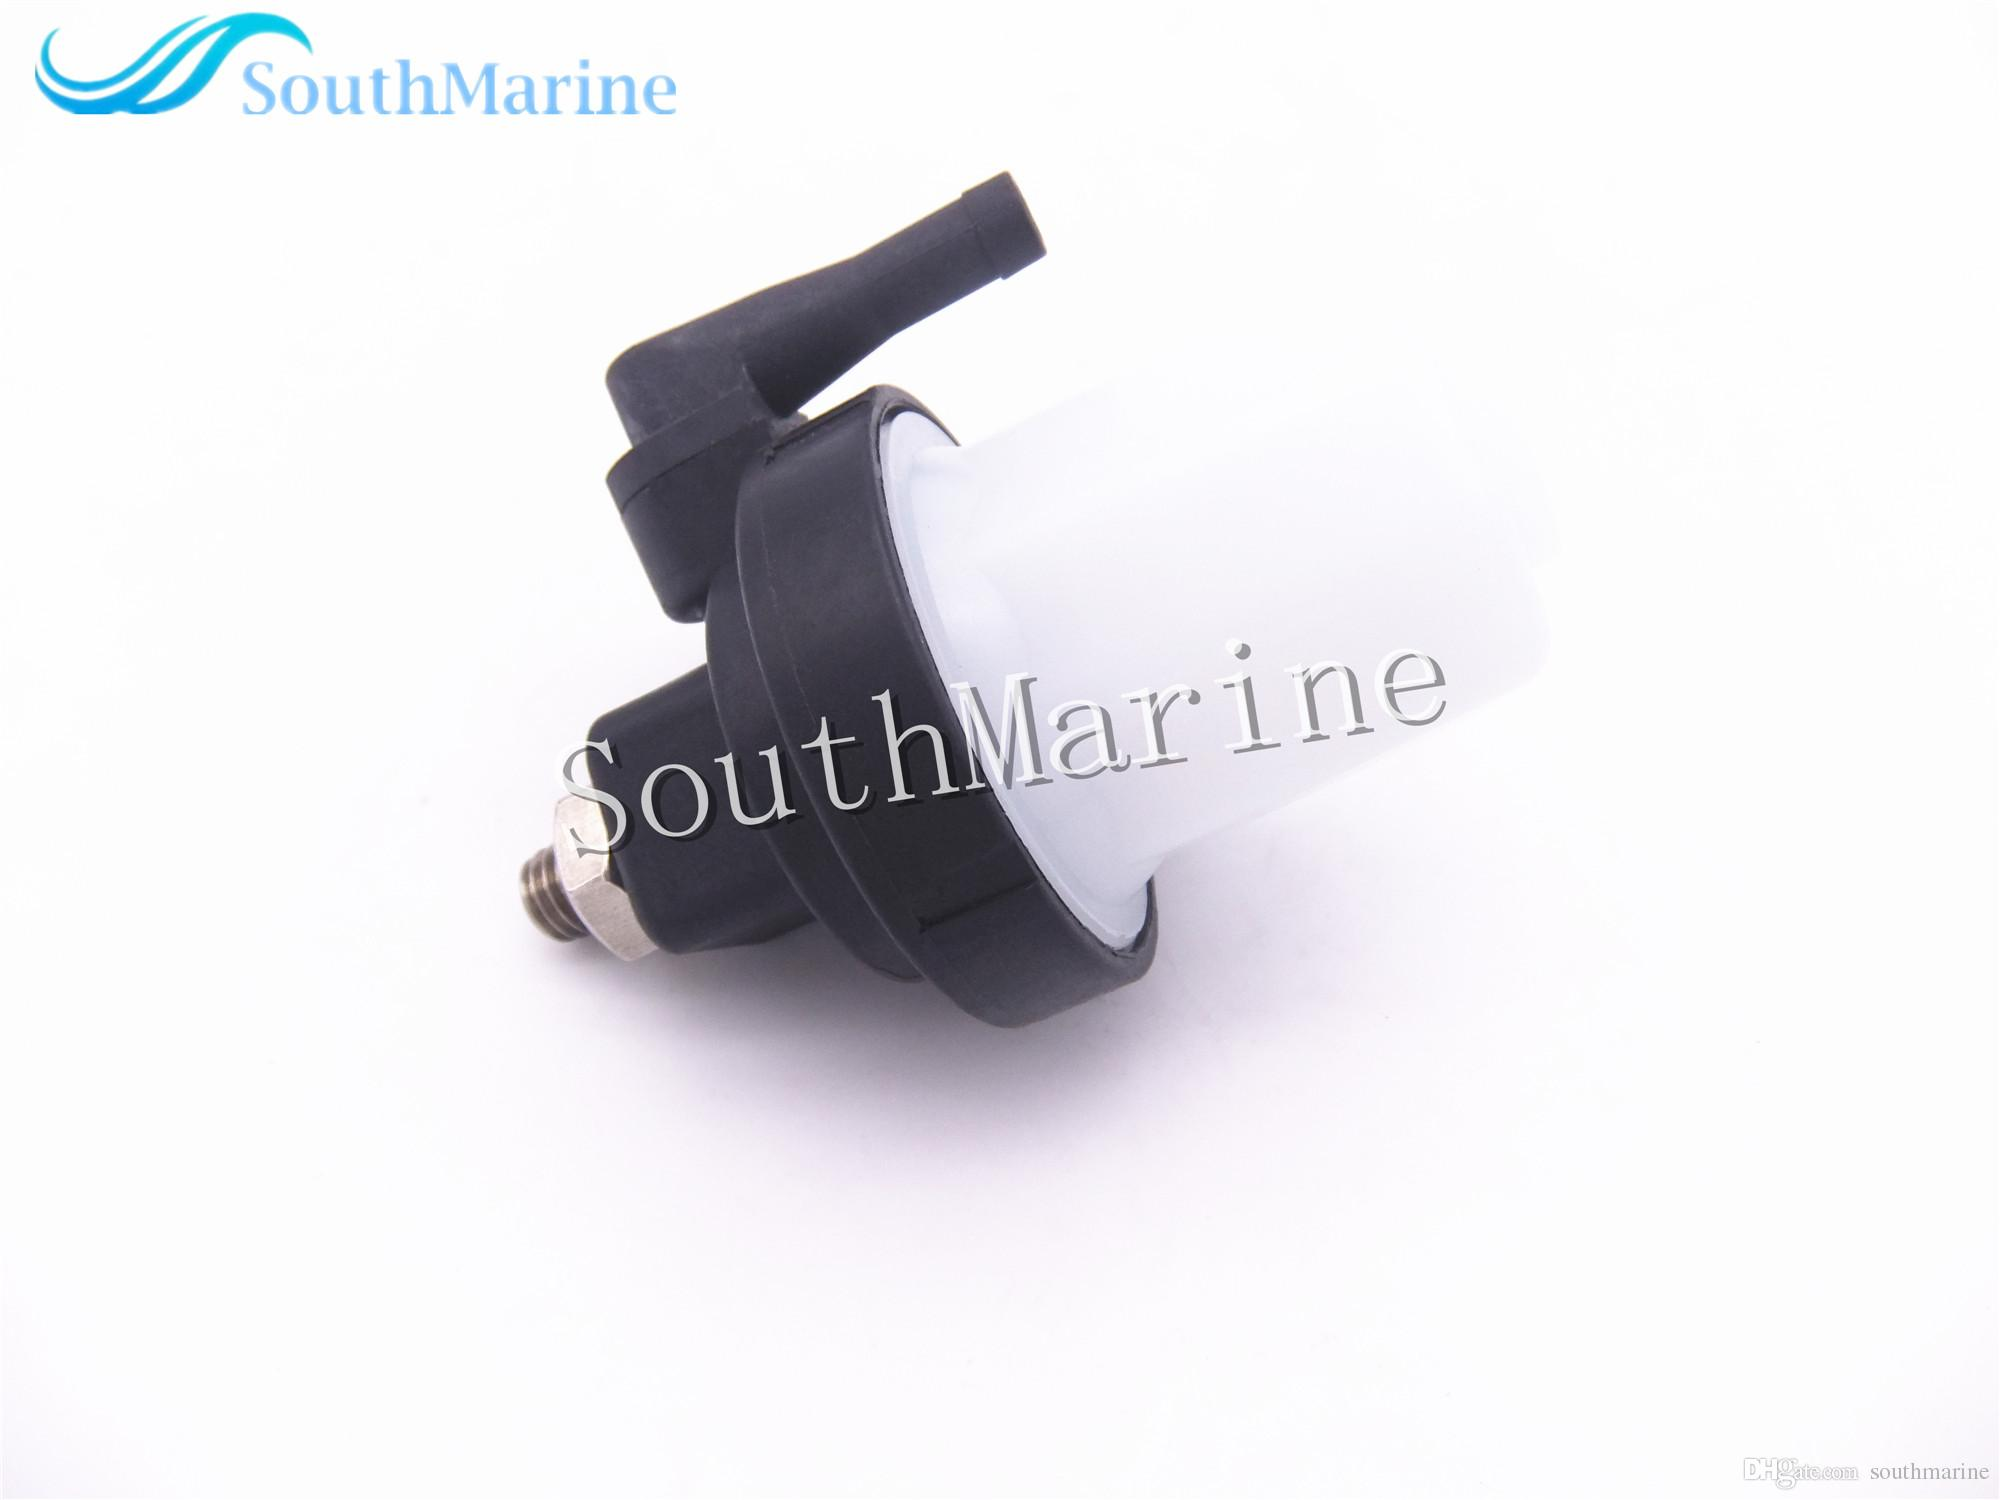 Outboard Engine 61n 24560 00 655 Fuel Filter Assy For Yamaha 10 Micron 99hp15hp 20hp 25hp 30hp 40hp 48hp 50hp 60hp 70hp 75hp 90hp Boat Motor